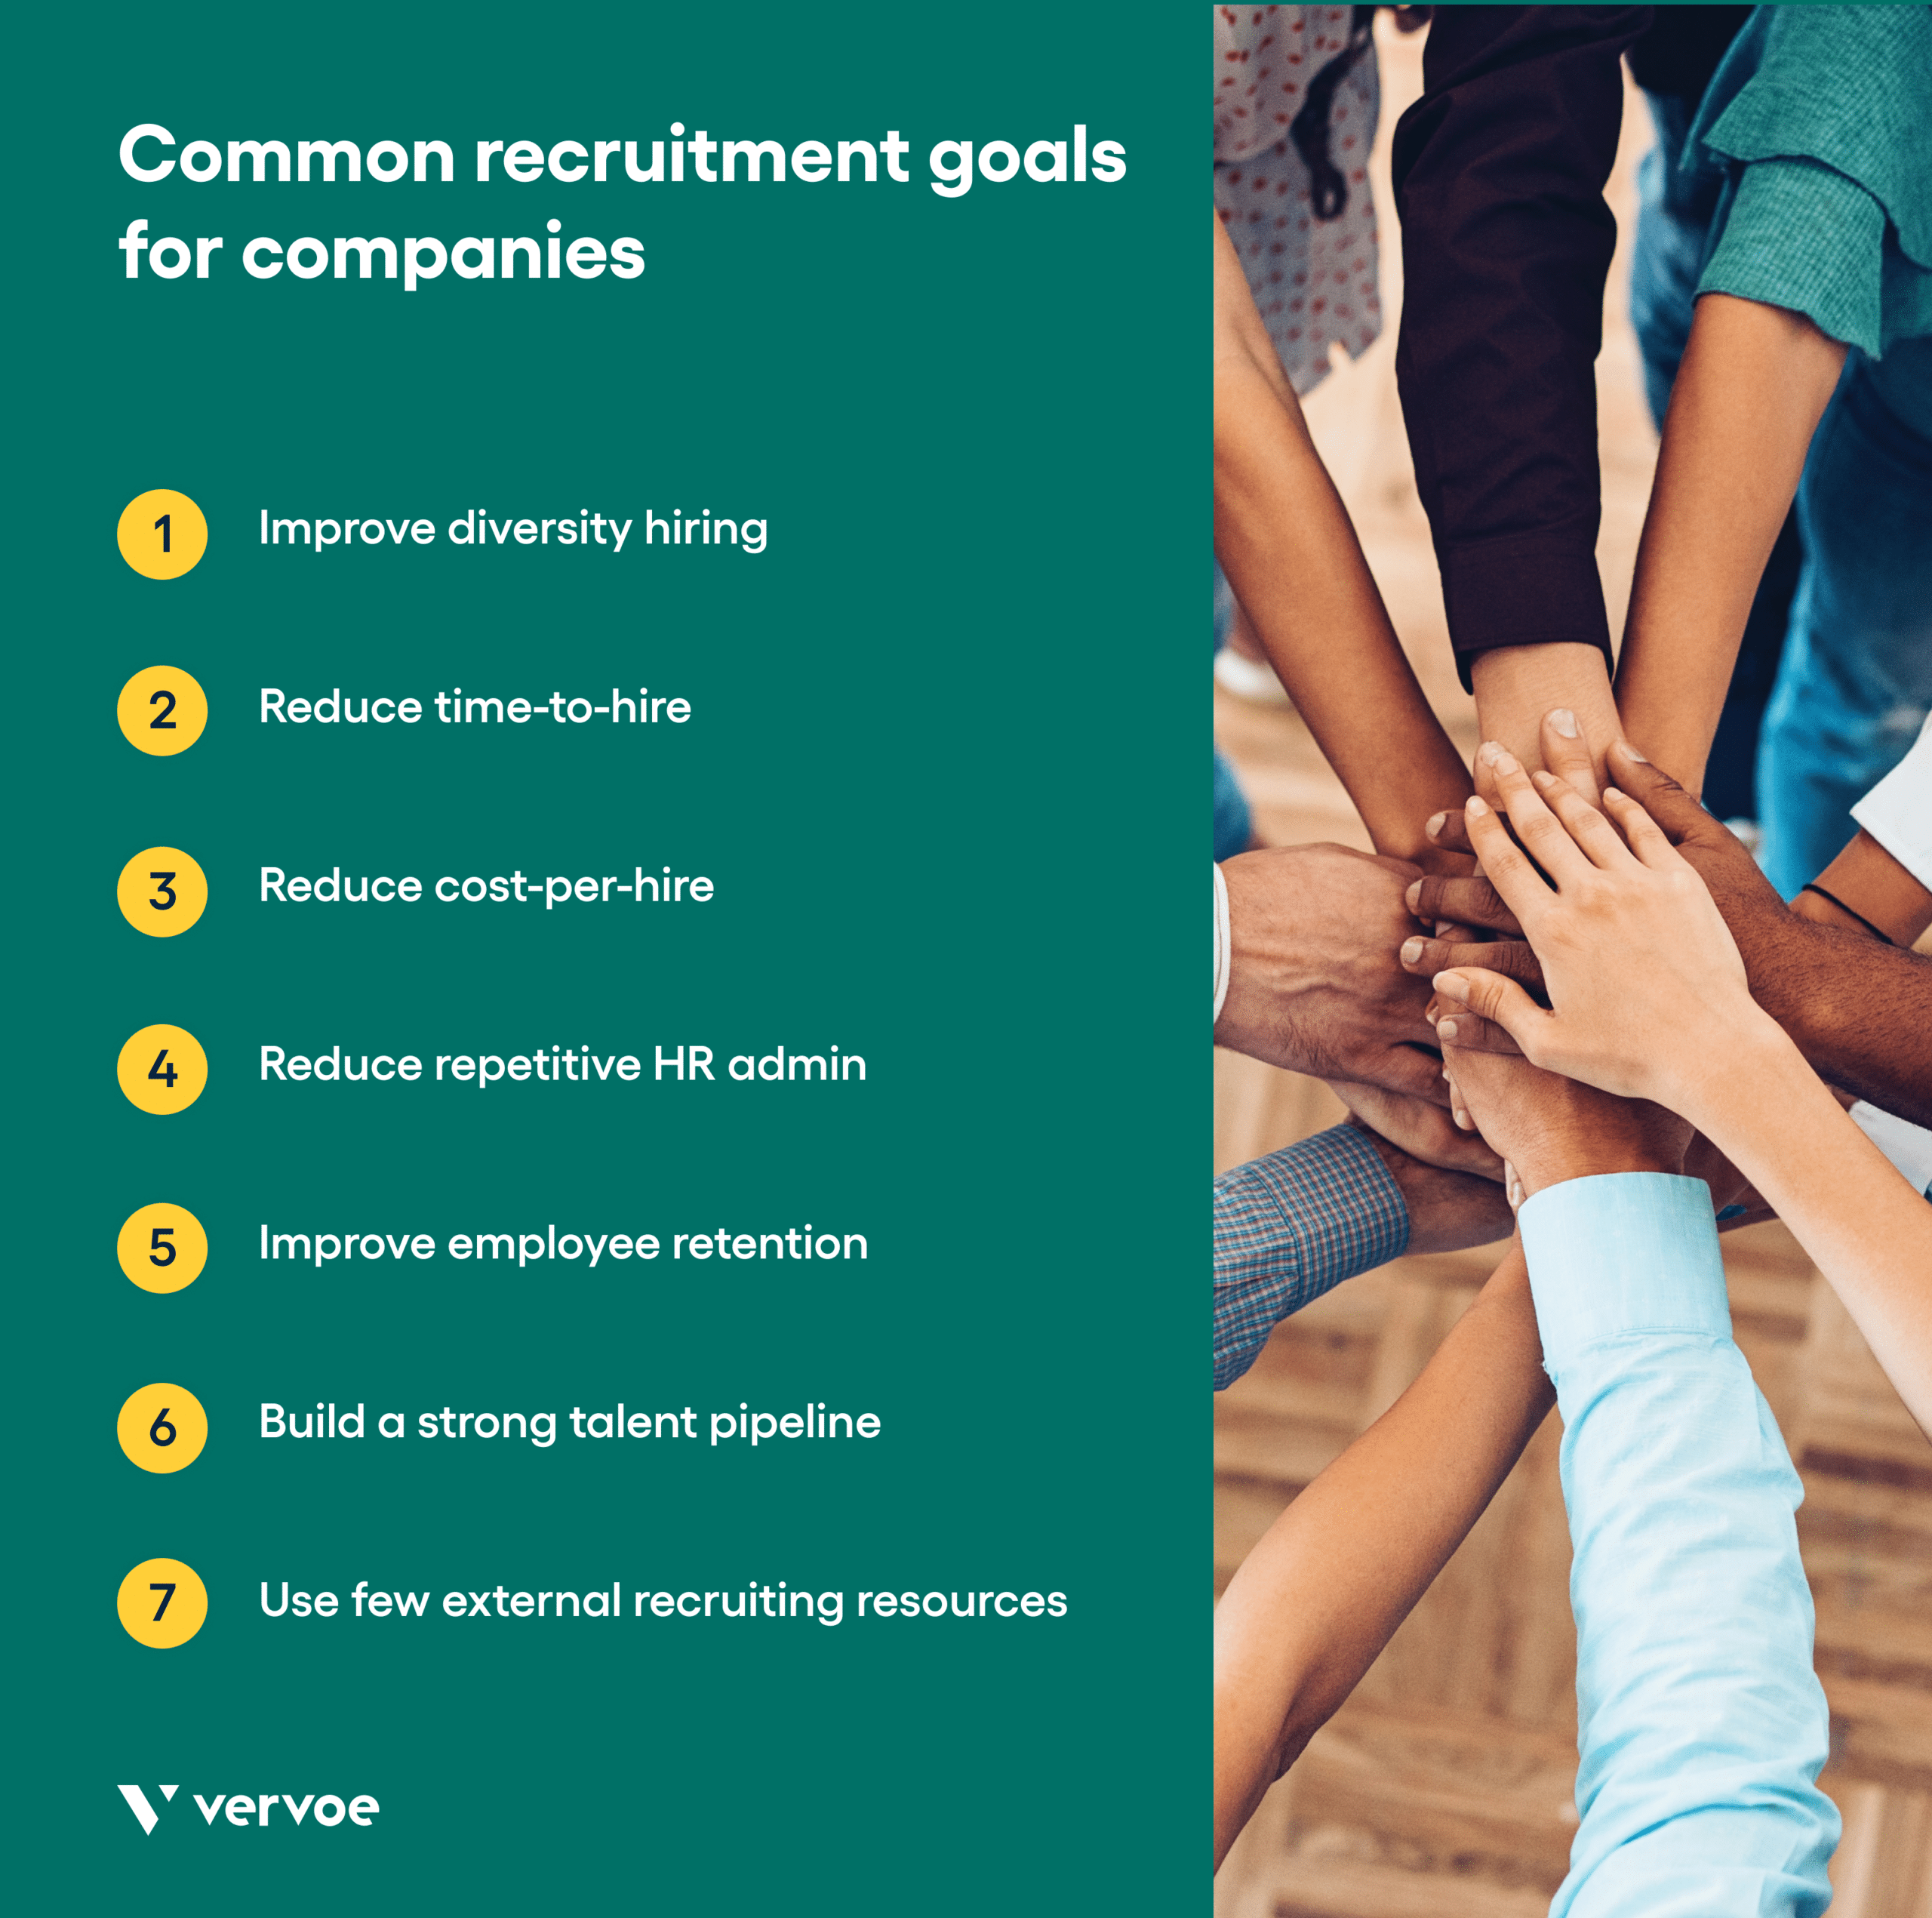 Graphic showing common recruitment goals for companies